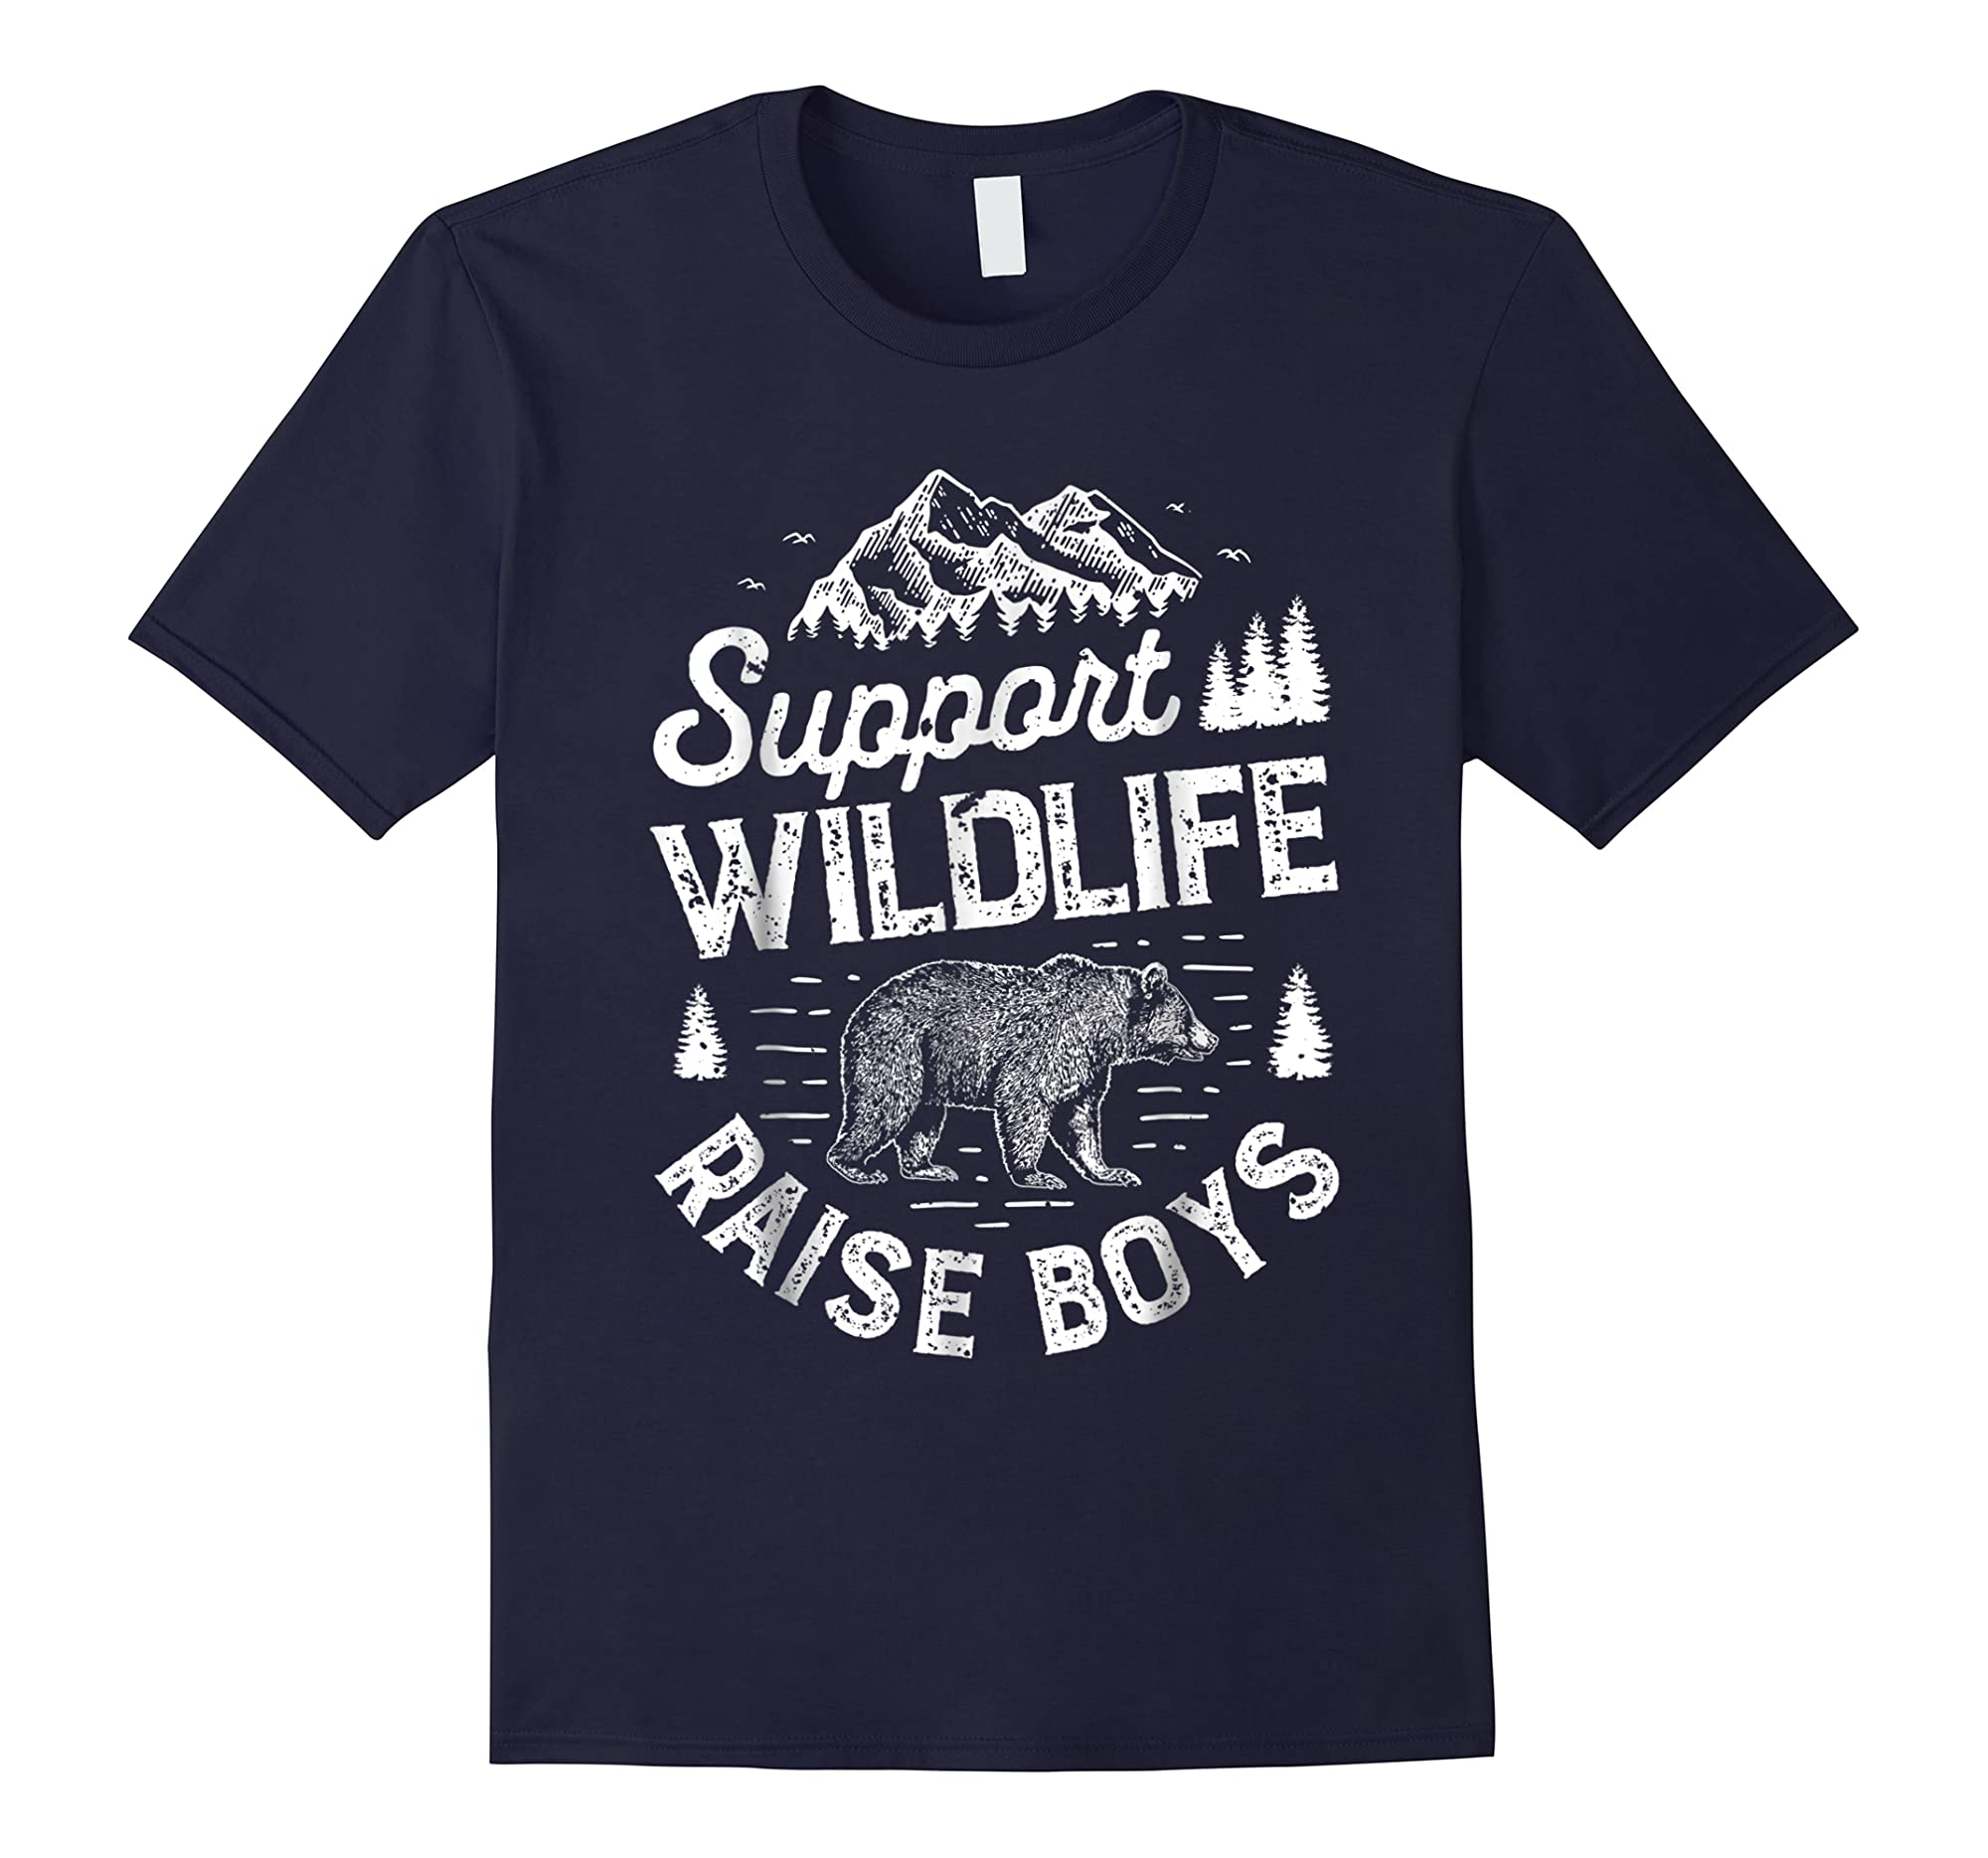 Top Selling Amazing Shirt Support Wildlife Raise T Shirt Mom Dad Mother Parents